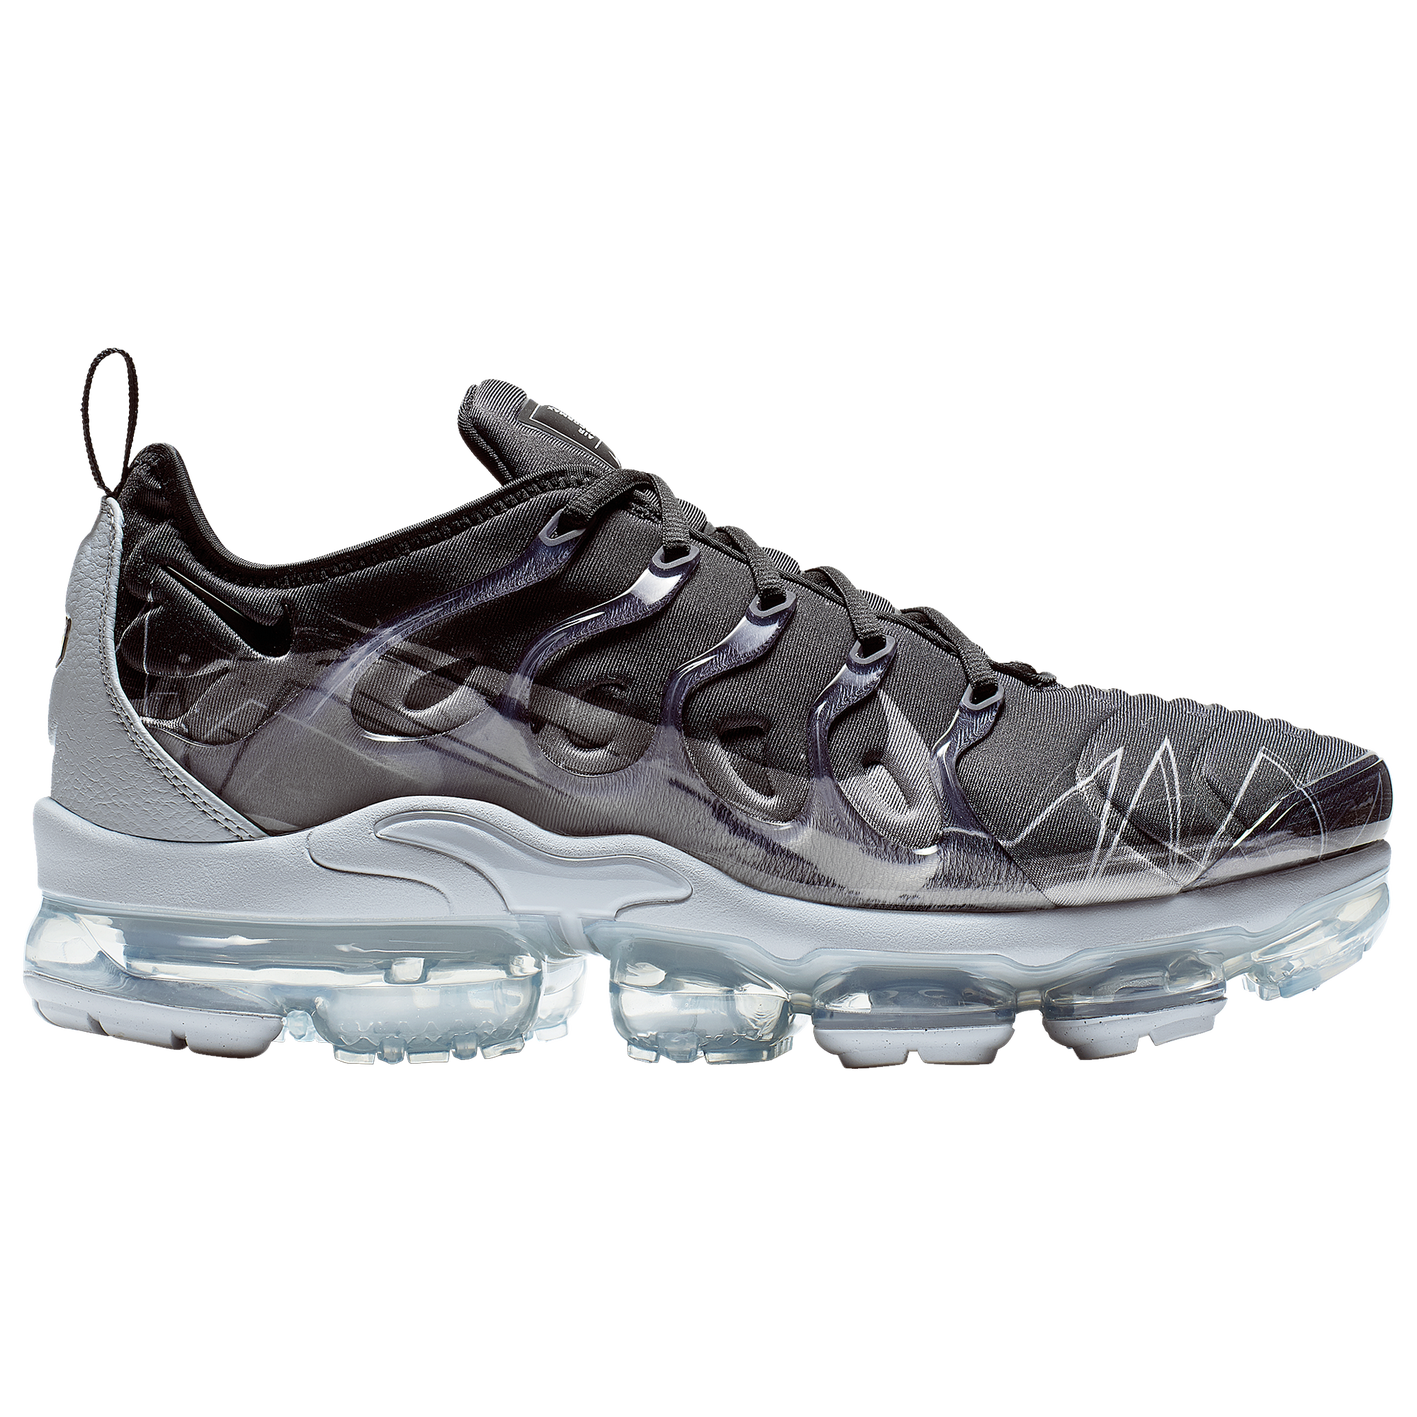 1fa27400ec Nike Air Vapormax Plus - Men's - Casual - Shoes - Black/Wolf Grey